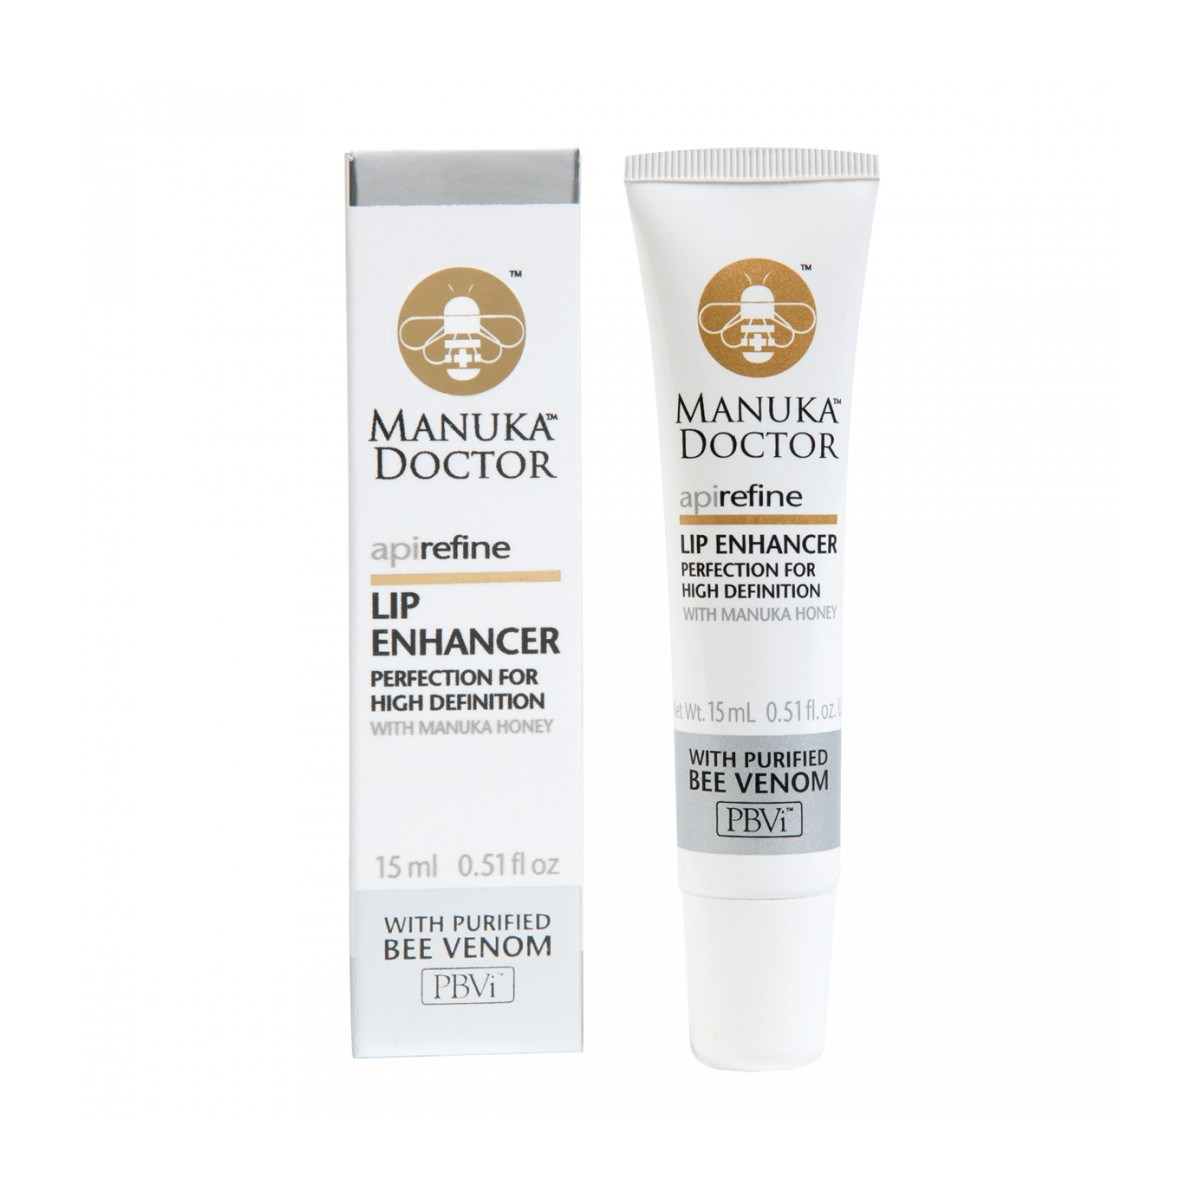 Manuka Doctor ApiRefine Lip Enhancer